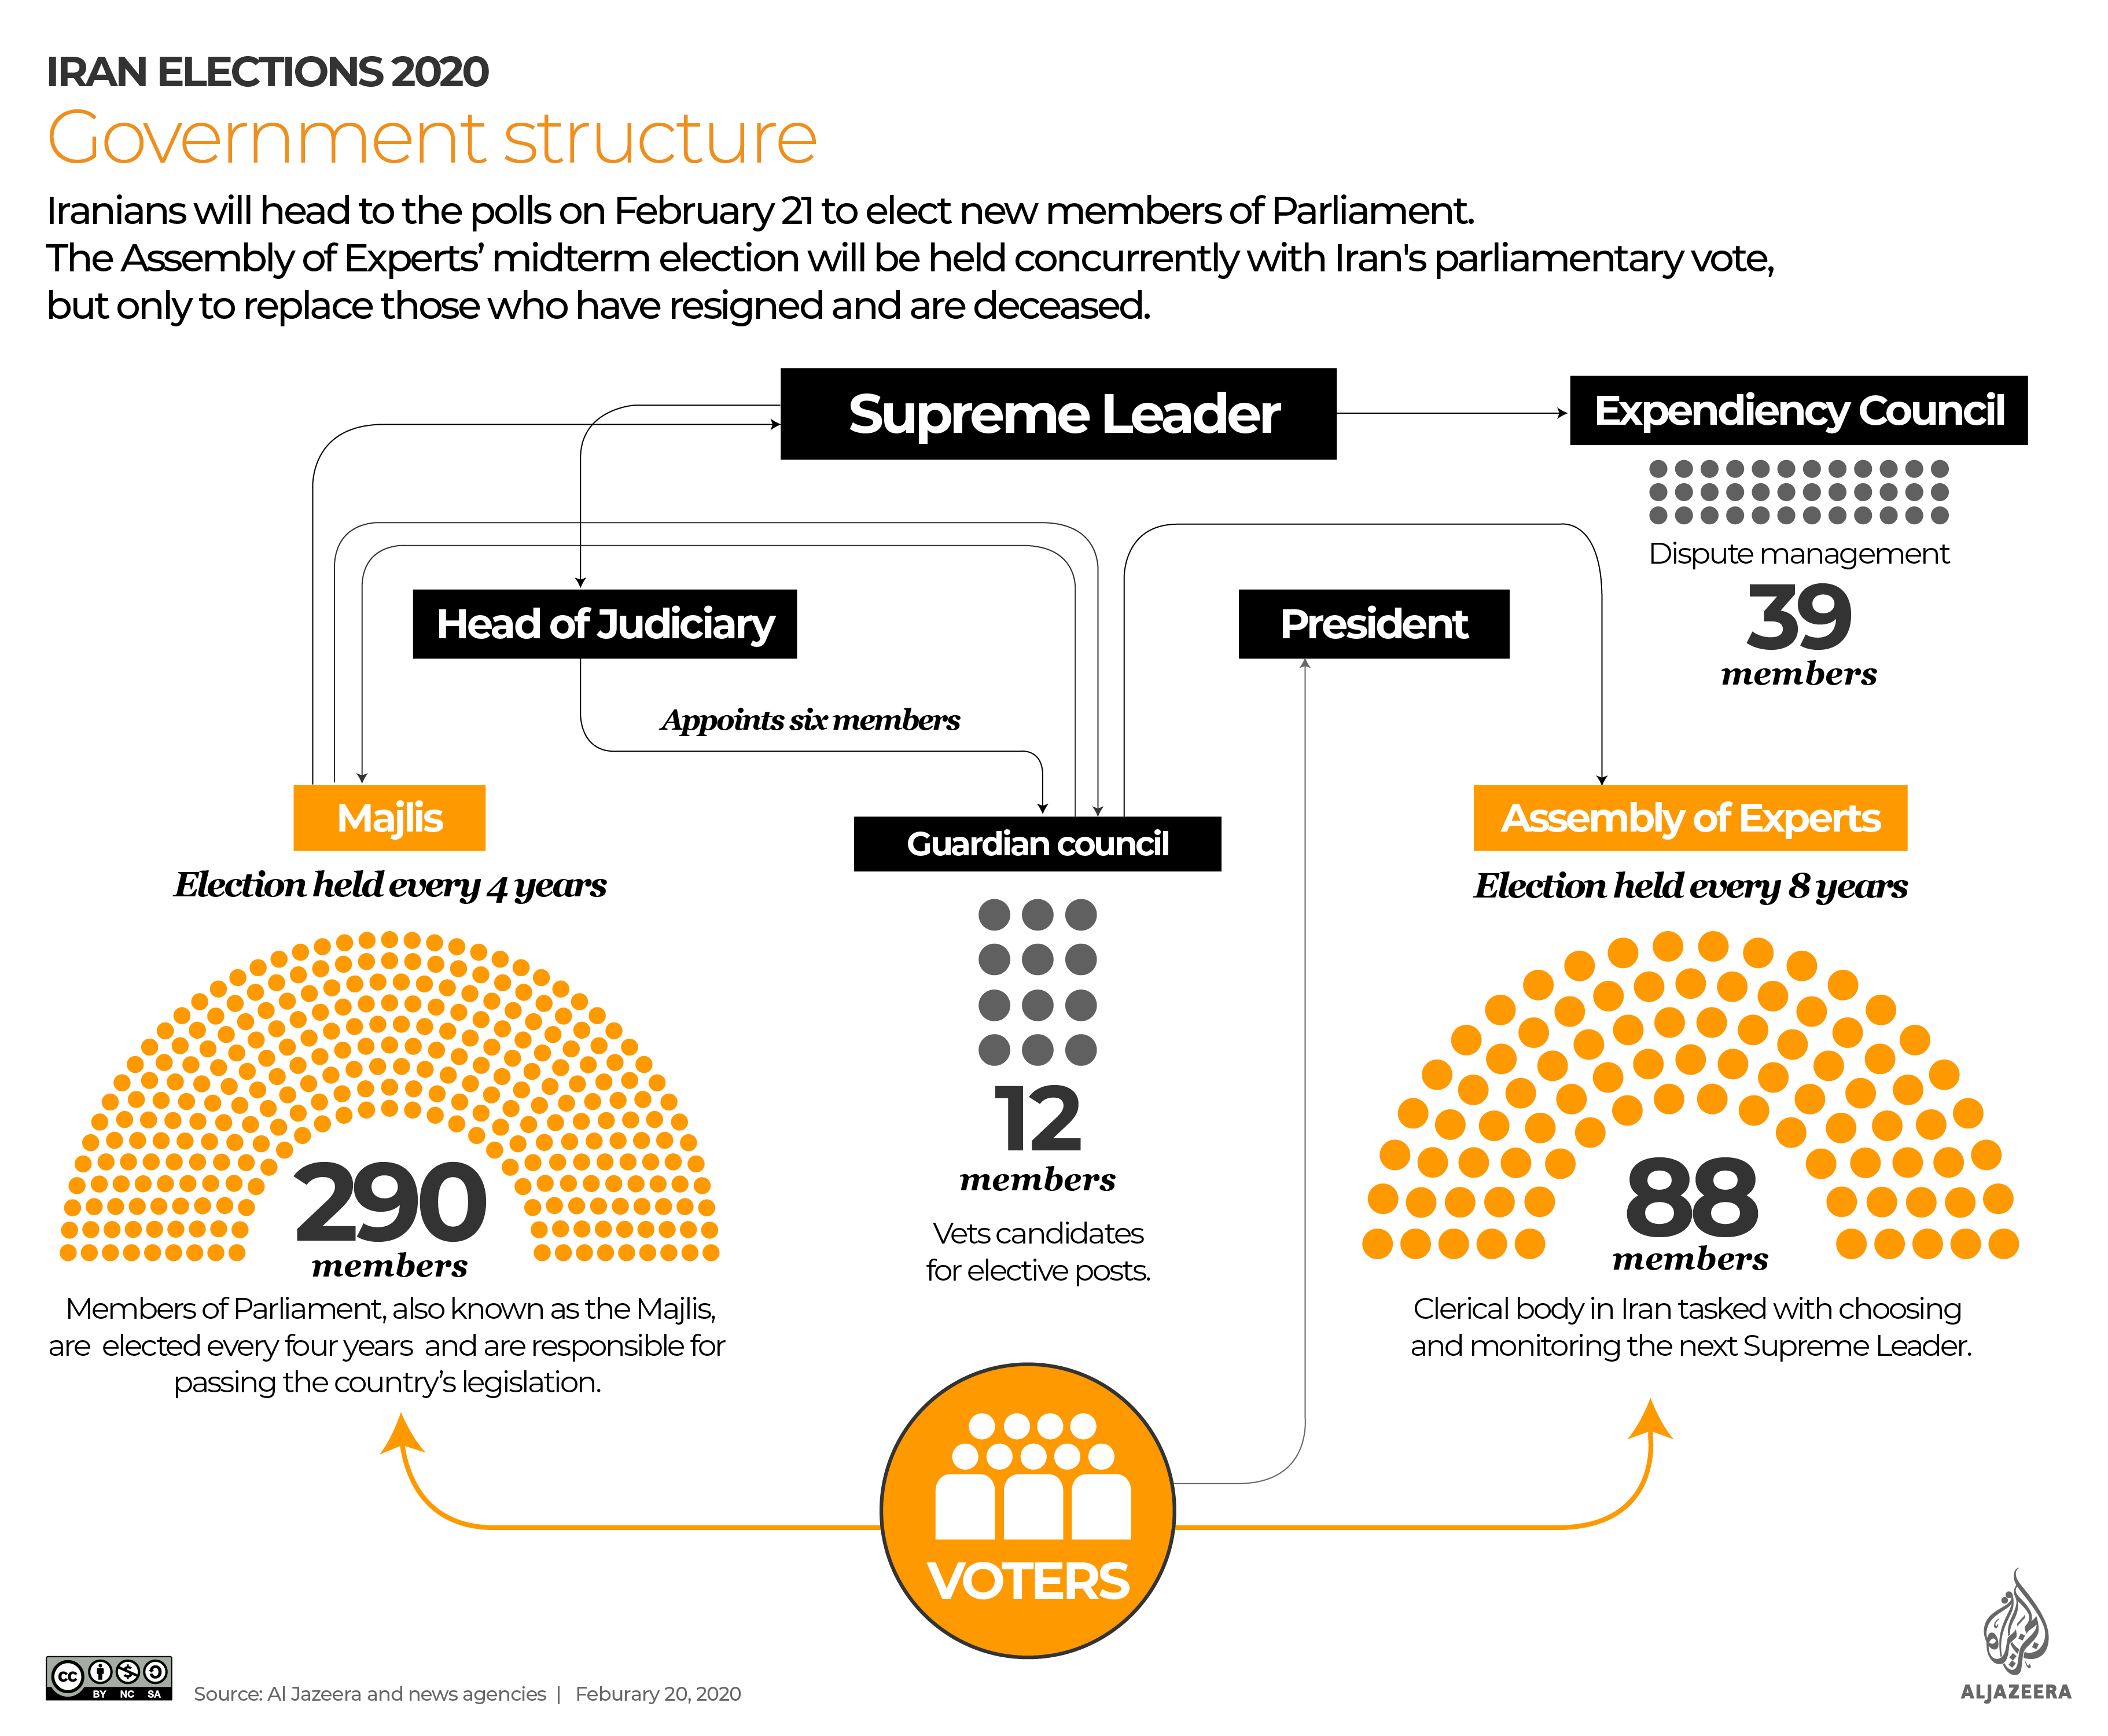 INTERACTIVE: Iran parliamentary elections 2020 - Government structure